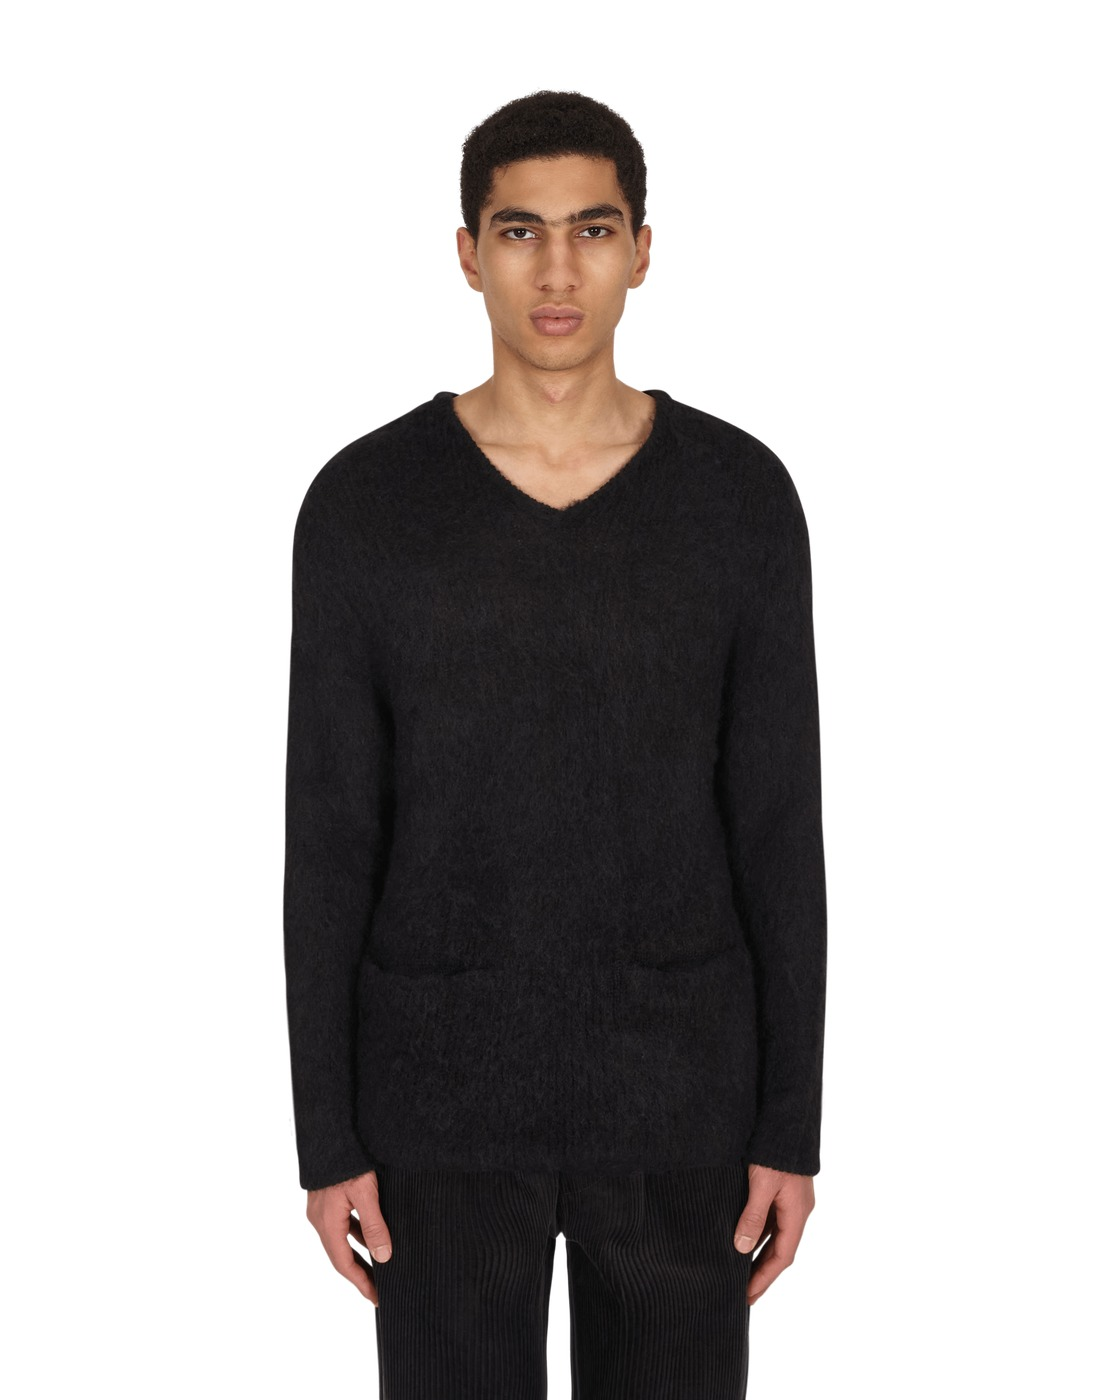 Photo: Neighborhood Mohair Sweater Black